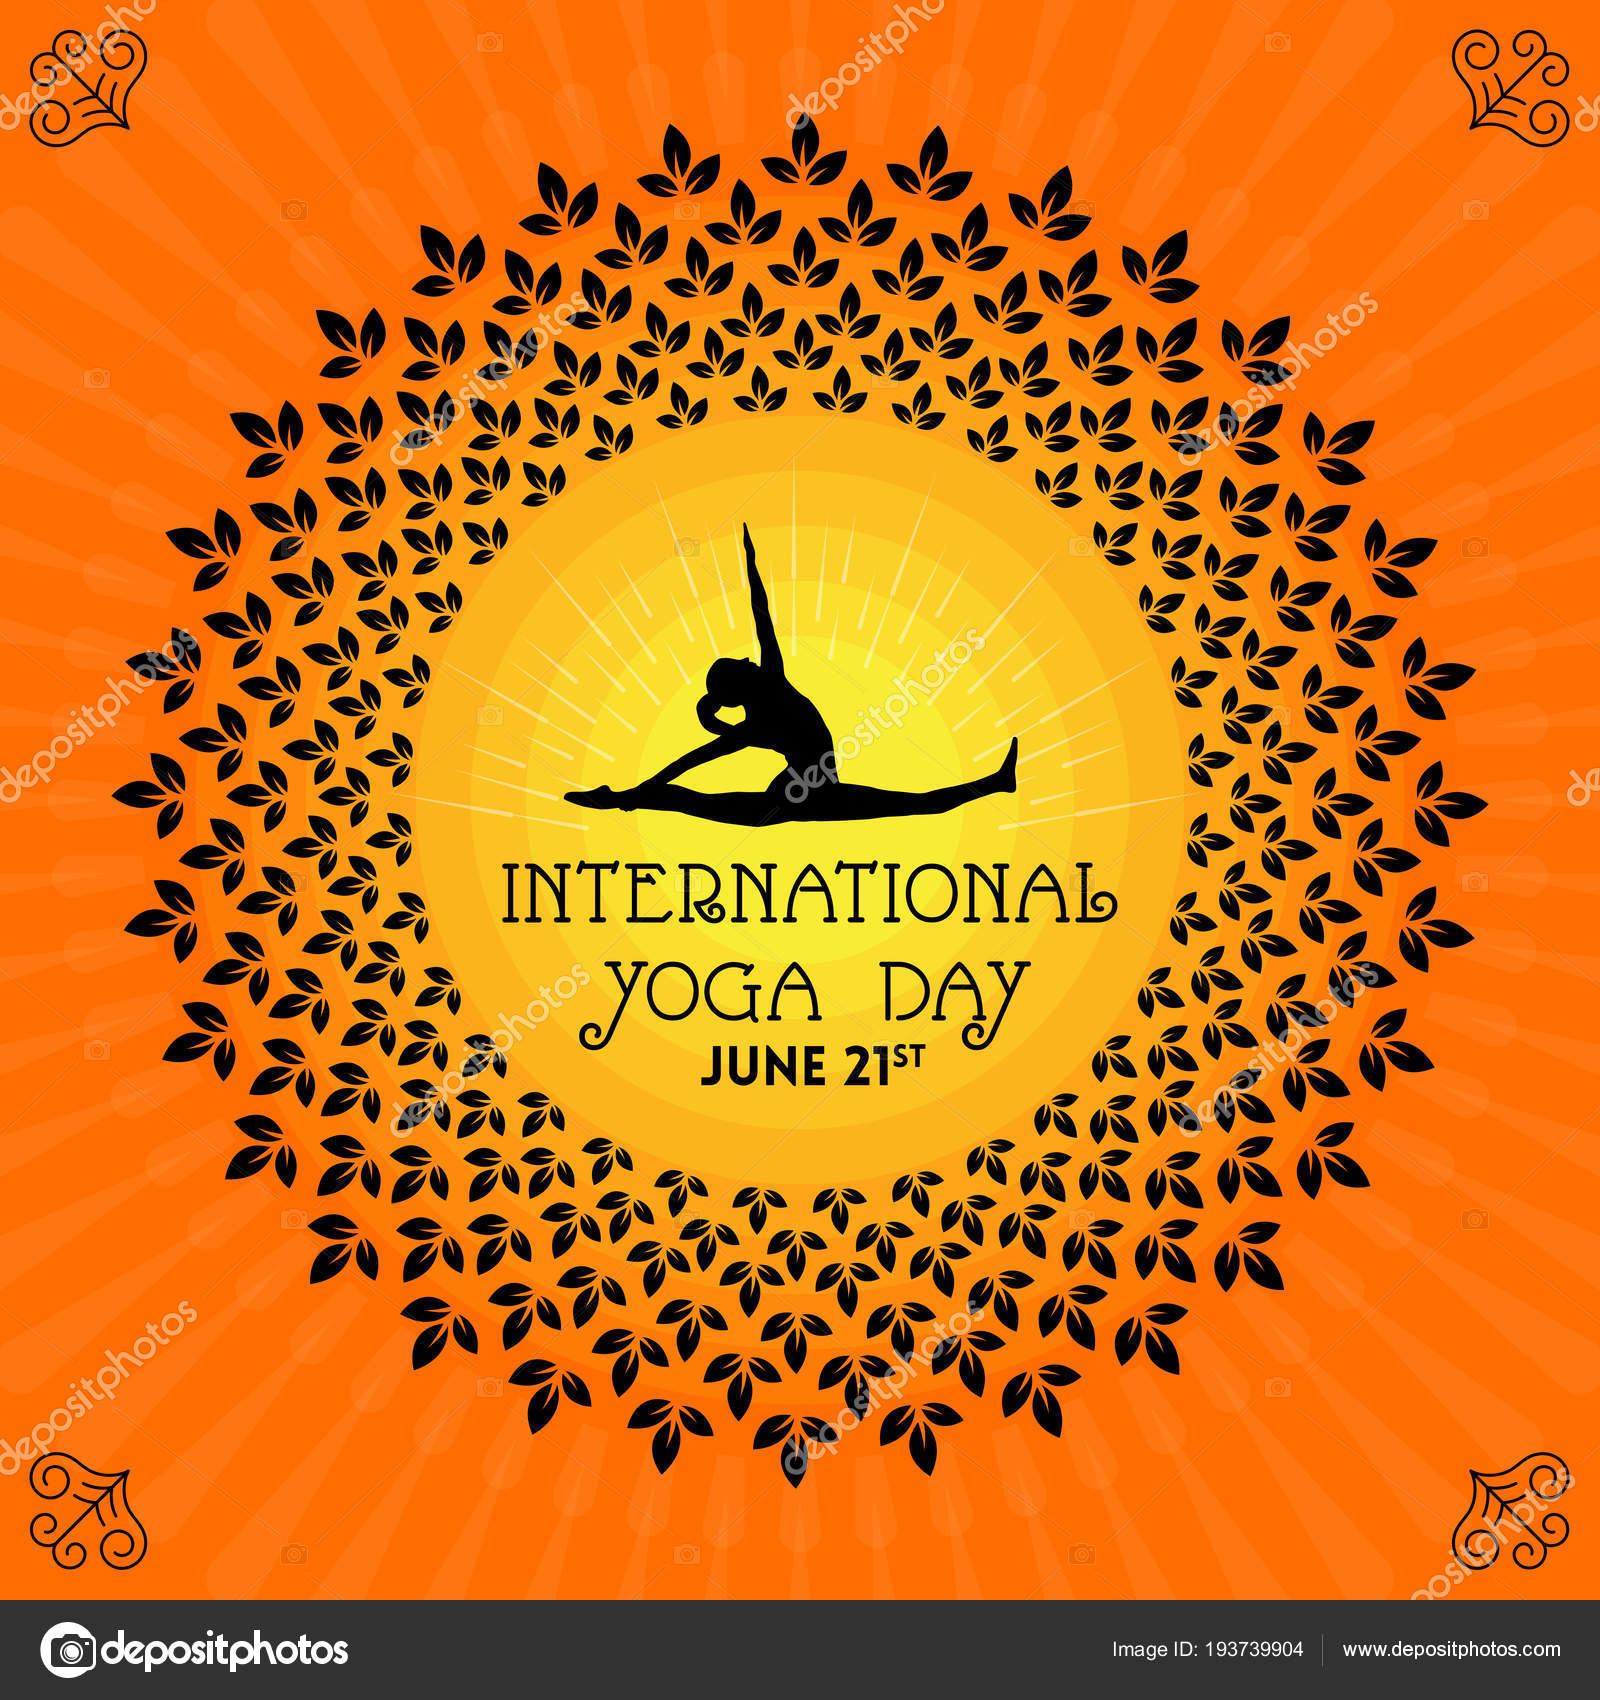 International Yoga Day Banner Floral Circle Female Silhouette Sunny Background Stock Vector C Satheeshsankaran 193739904